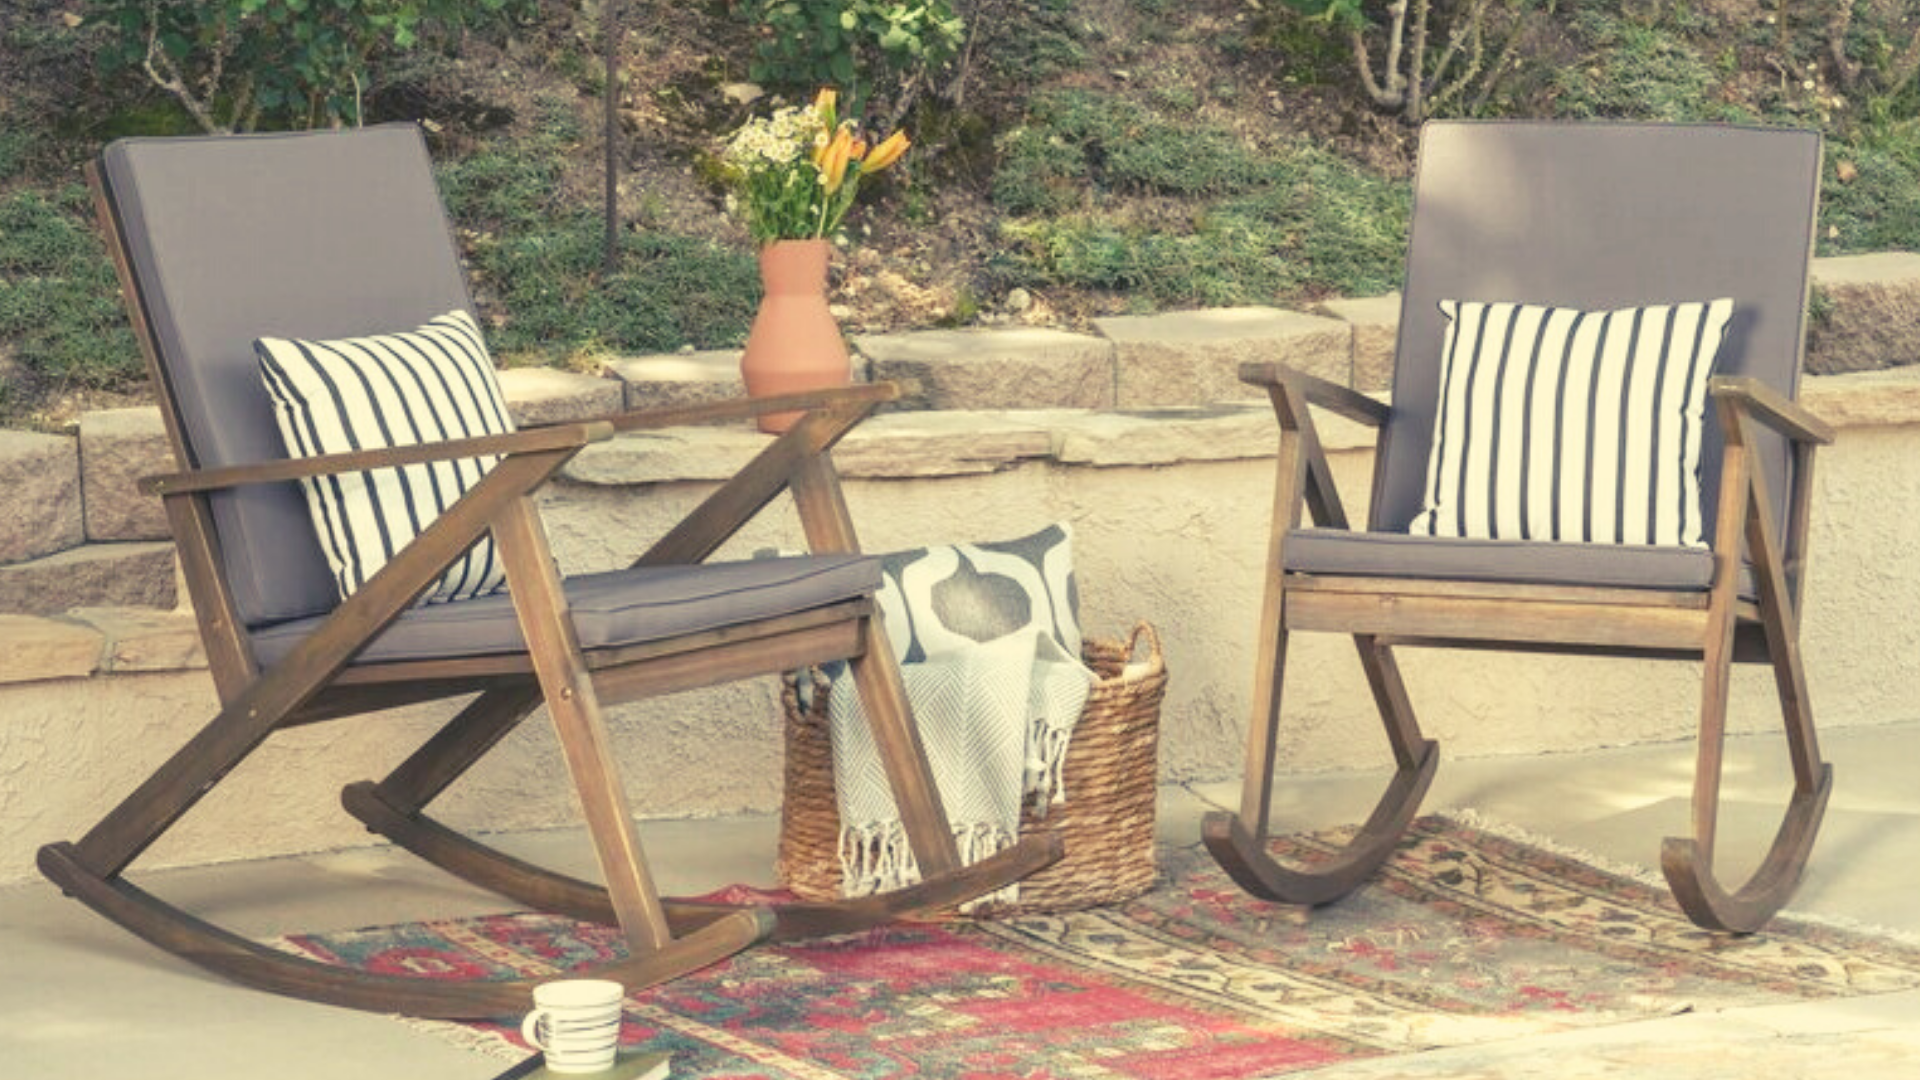 6 Outdoor Rocking Chairs to Relax in All Summer Long